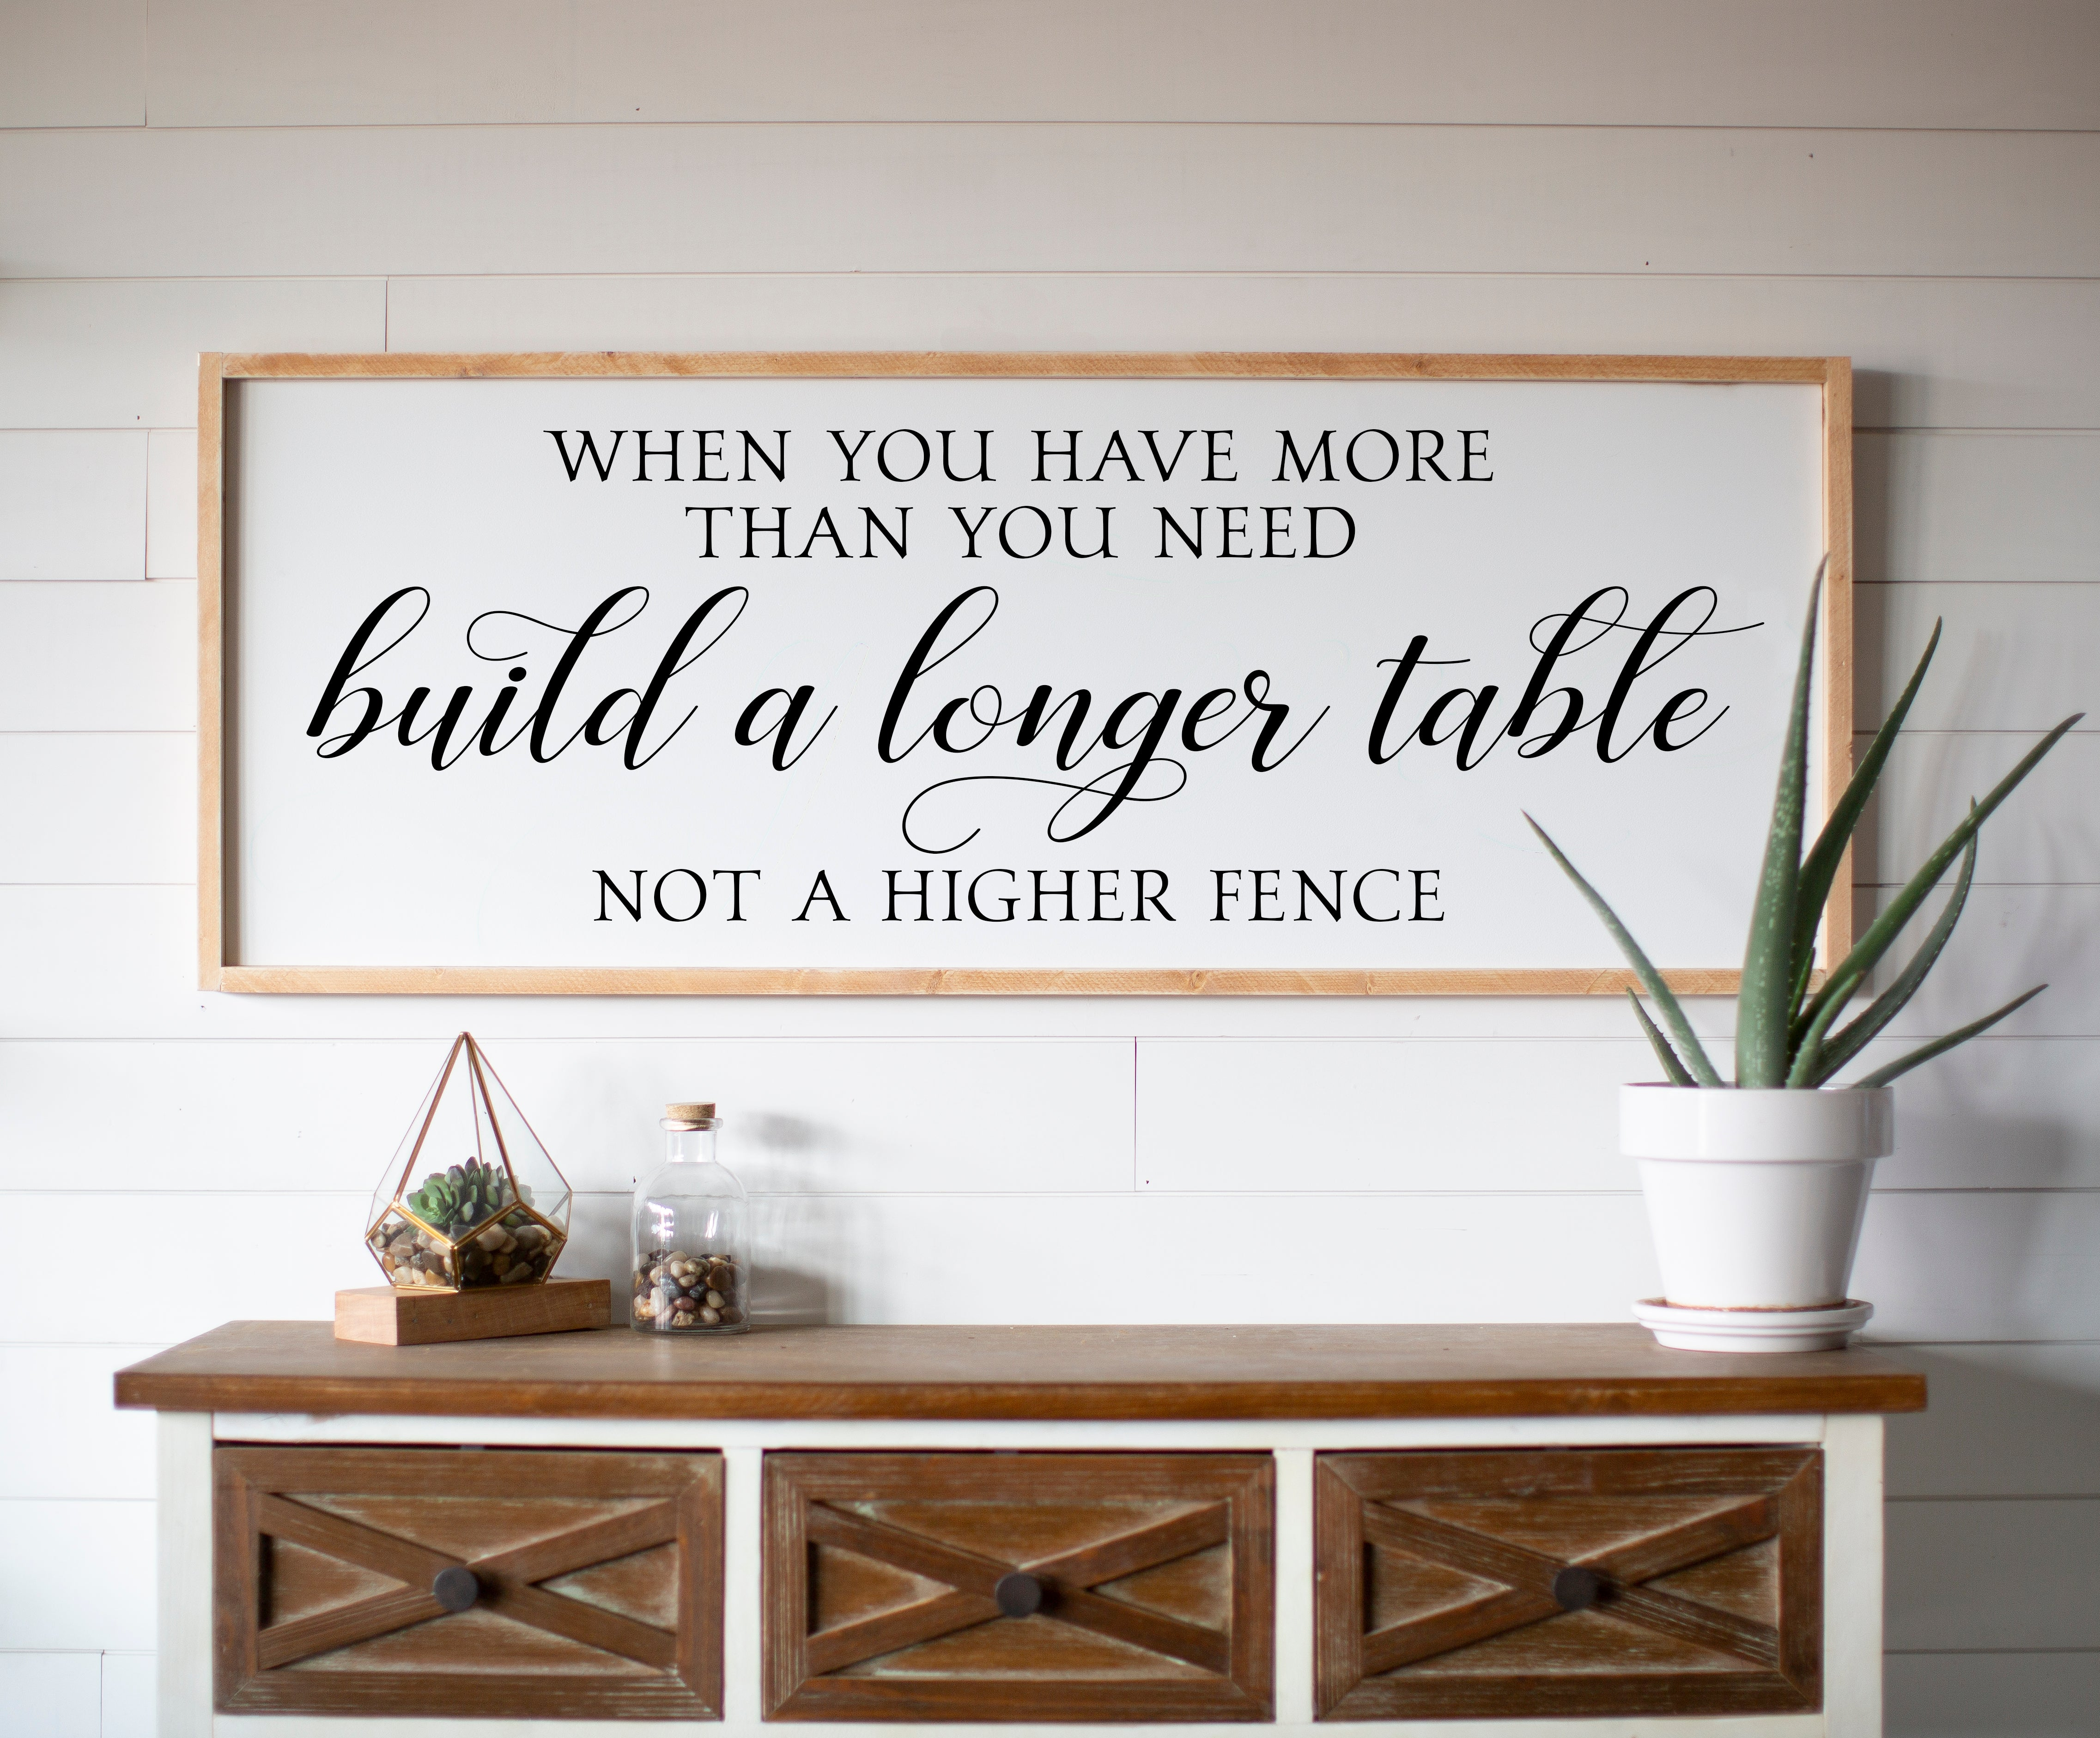 When you have more than you need, build a longer table, not a higher fence